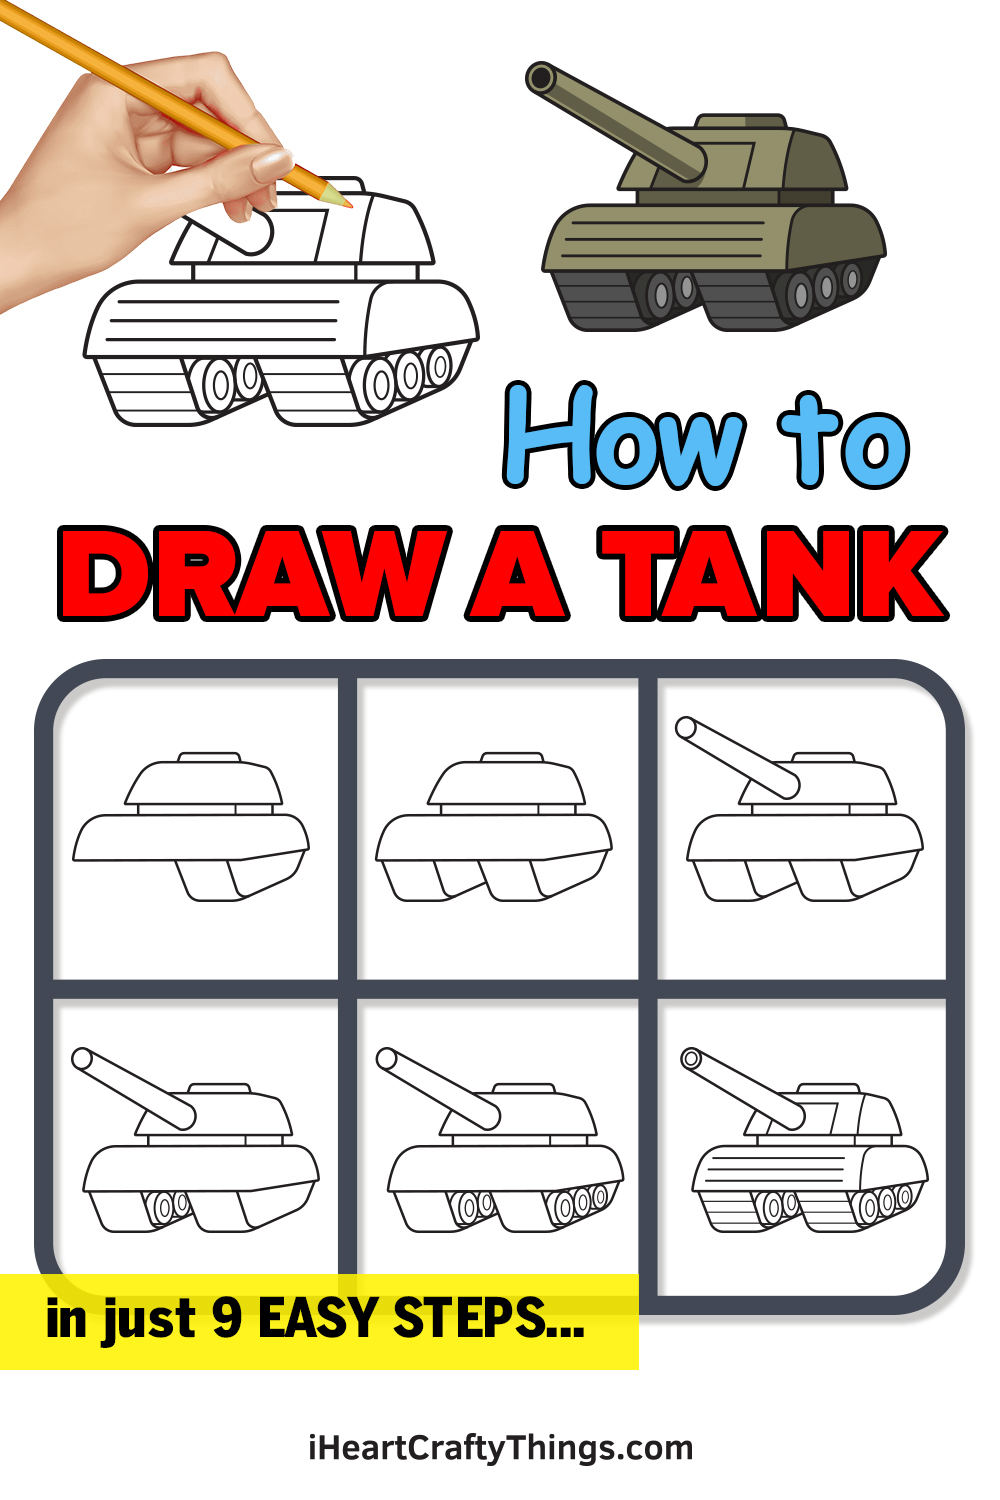 how to draw a tank in 9 easy steps